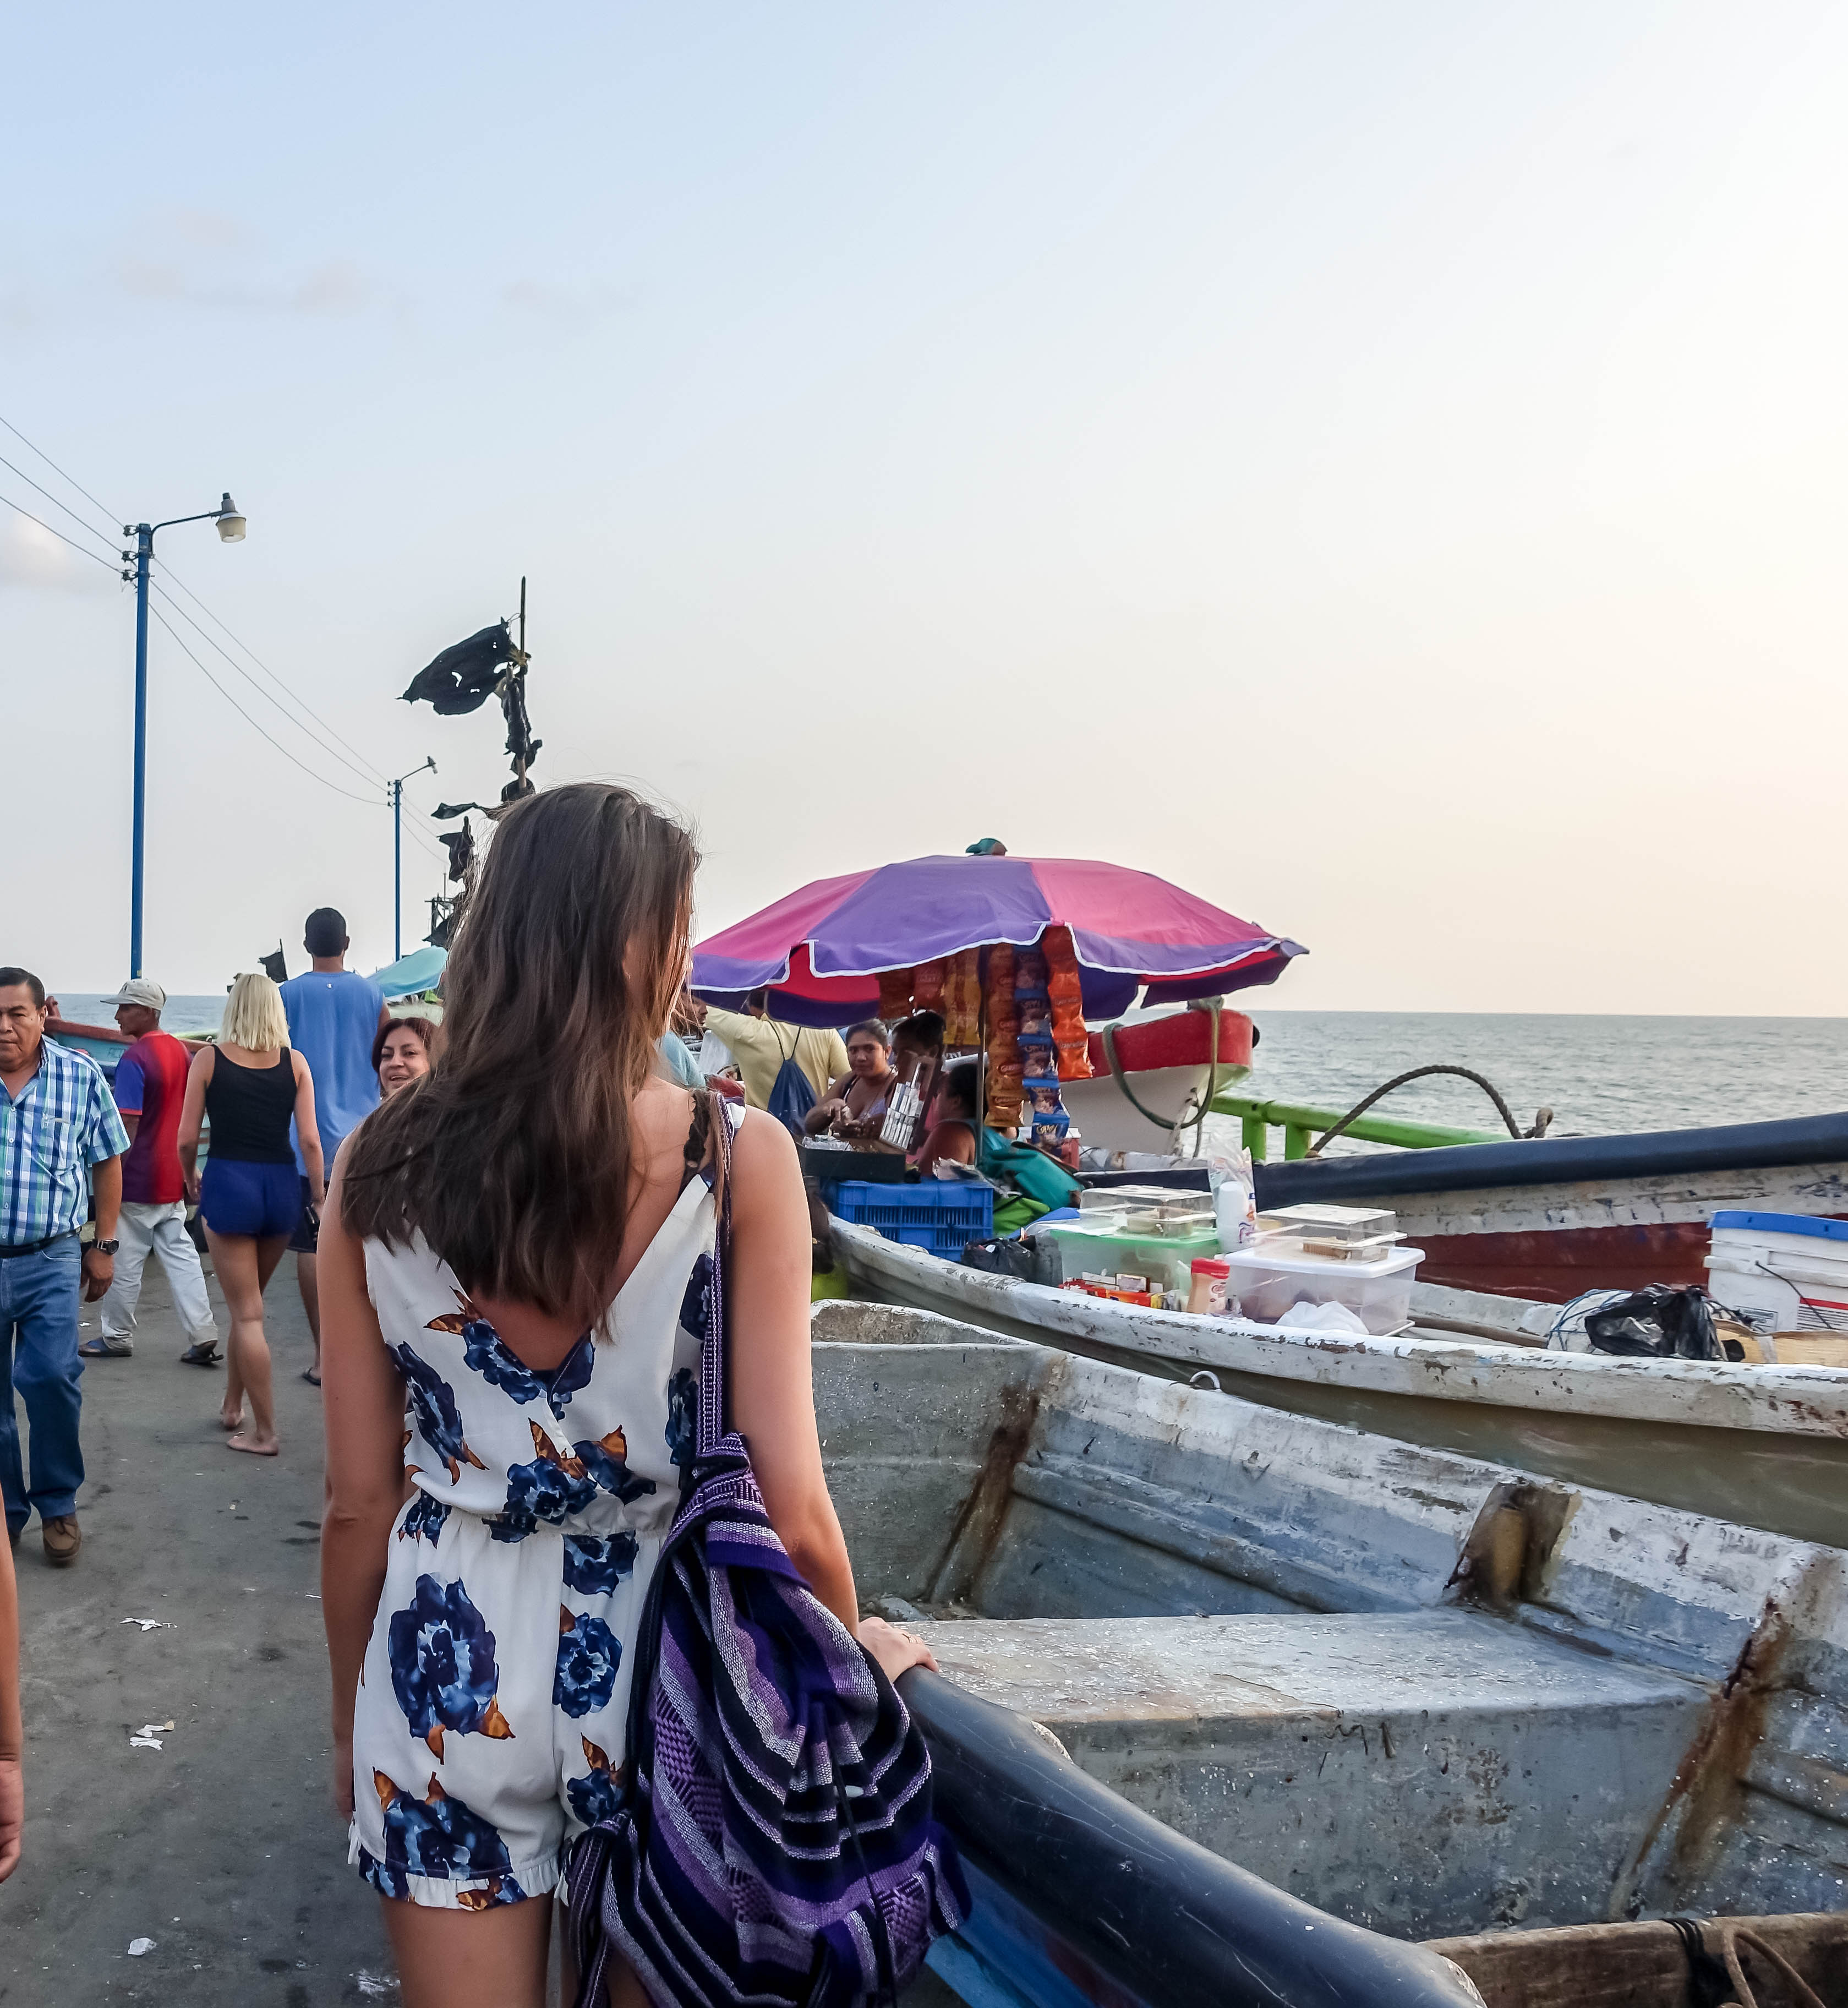 El Salvador Is a beautiful country, make sure not to miss out on El Tunco! A beach town with great surf, beaches, parties and more...